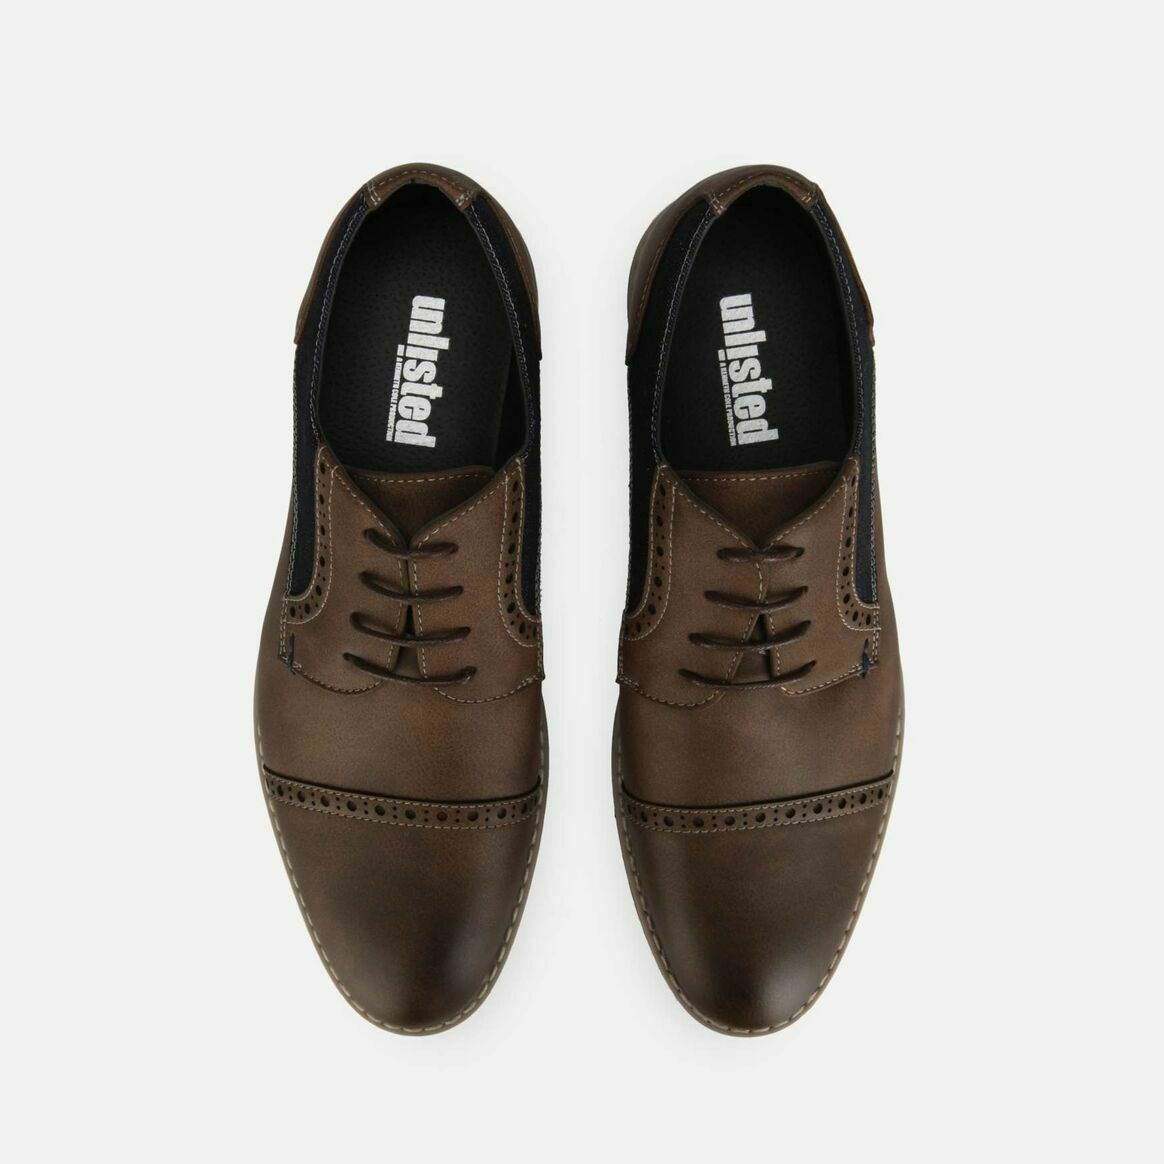 Unlisted by Kenneth Cole Men's Ozzie Lace Up B Oxford - Brown Size 11 M